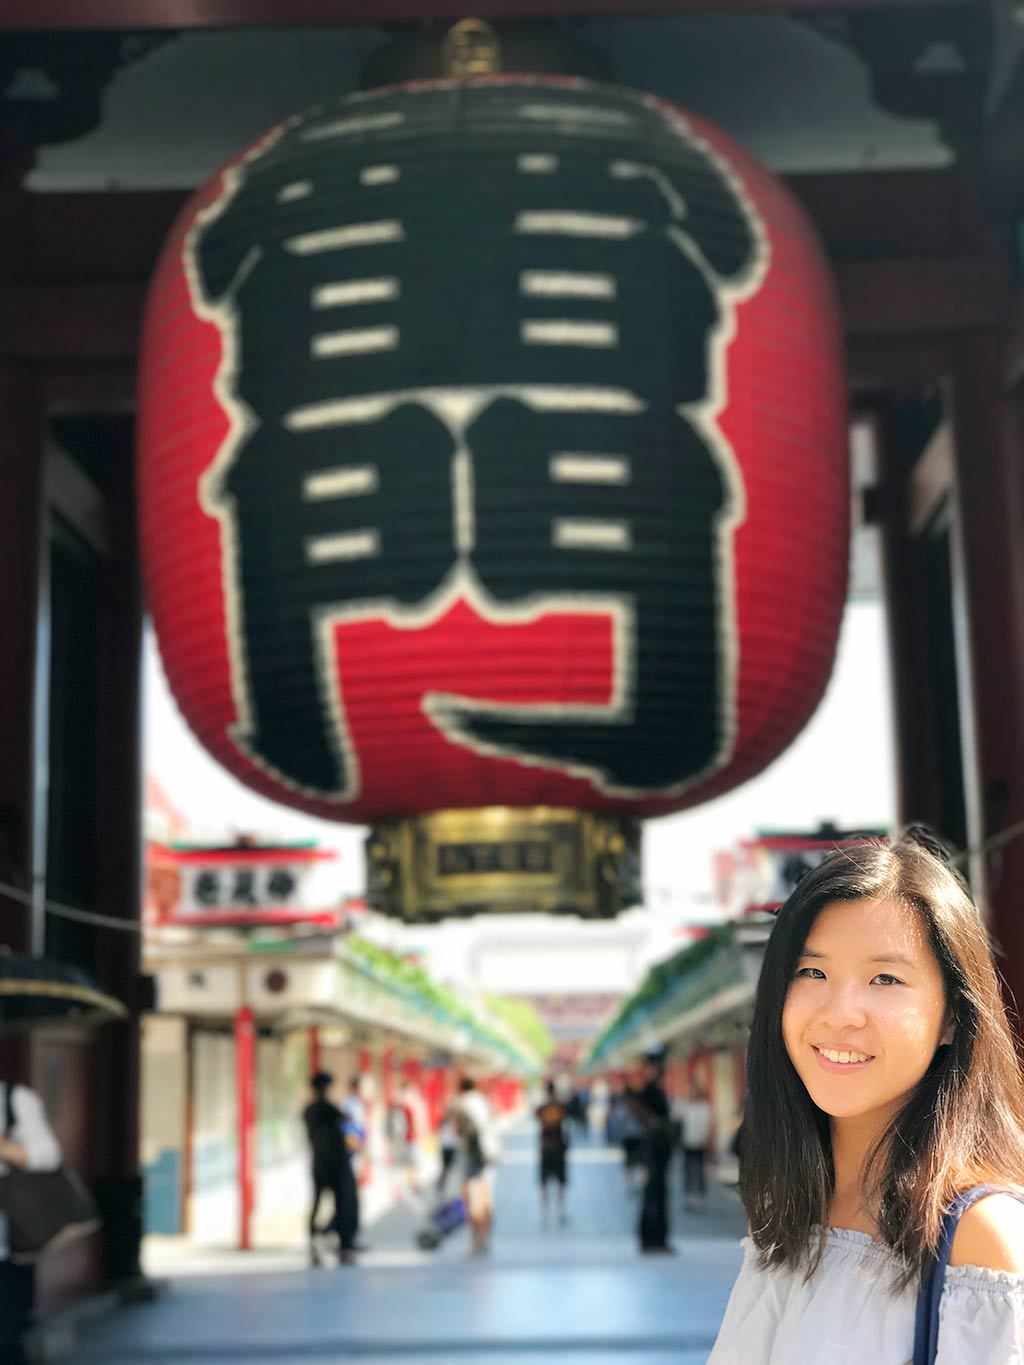 Kaminarimon with me in front, using iphone portrait mode, asakusa taito, tokyo, japan   Laugh Travel Eat